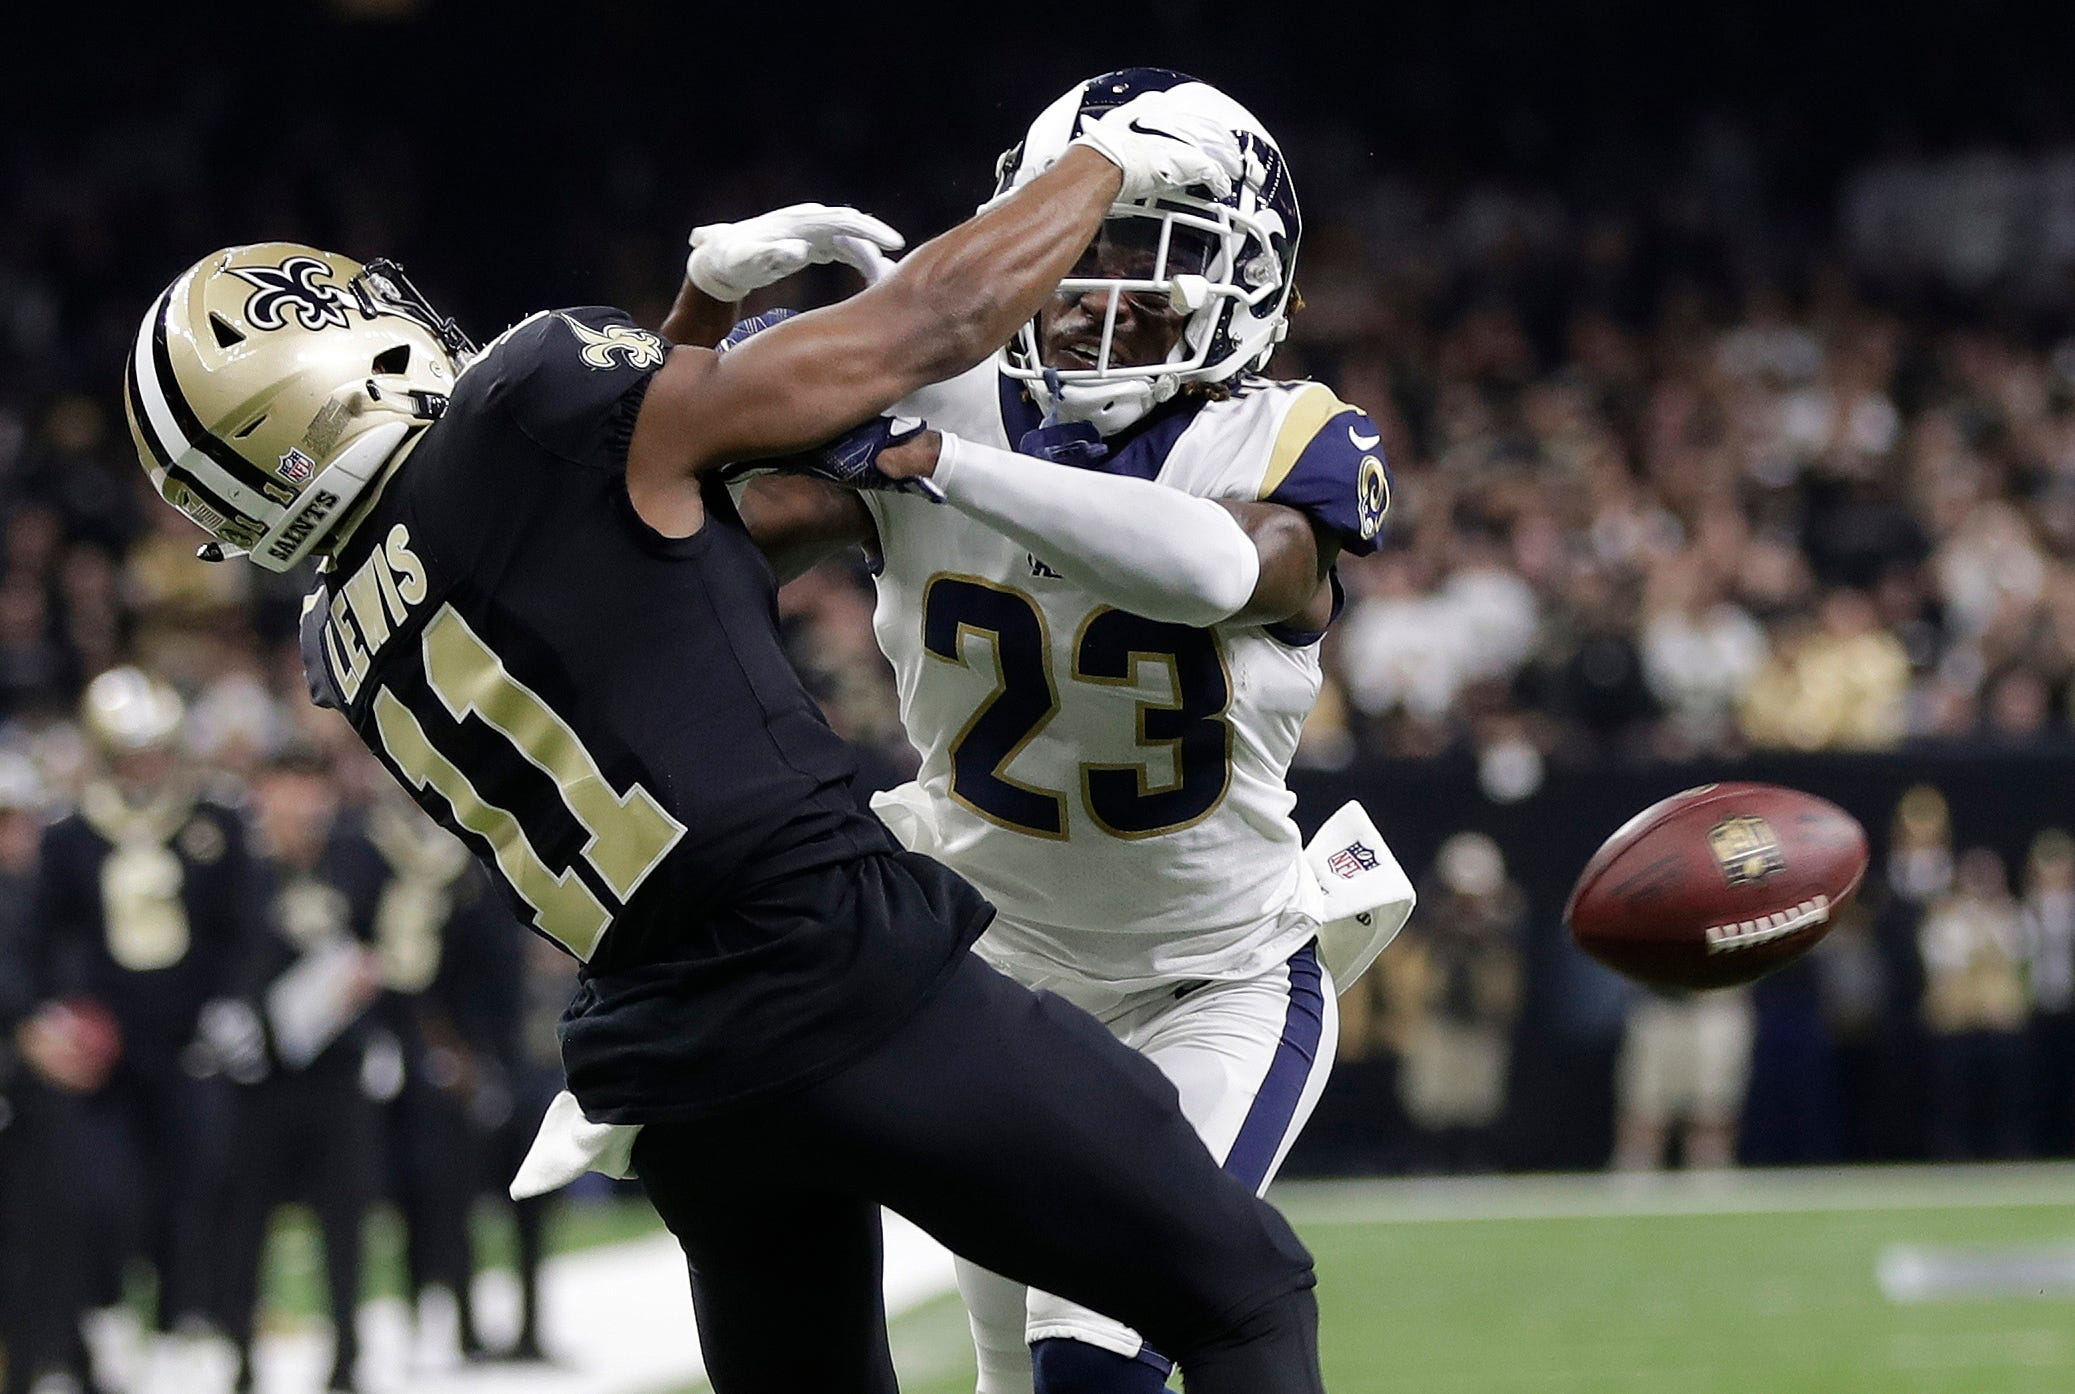 Louisiana high court rejects 'NOLA No-Call' suit against NFL